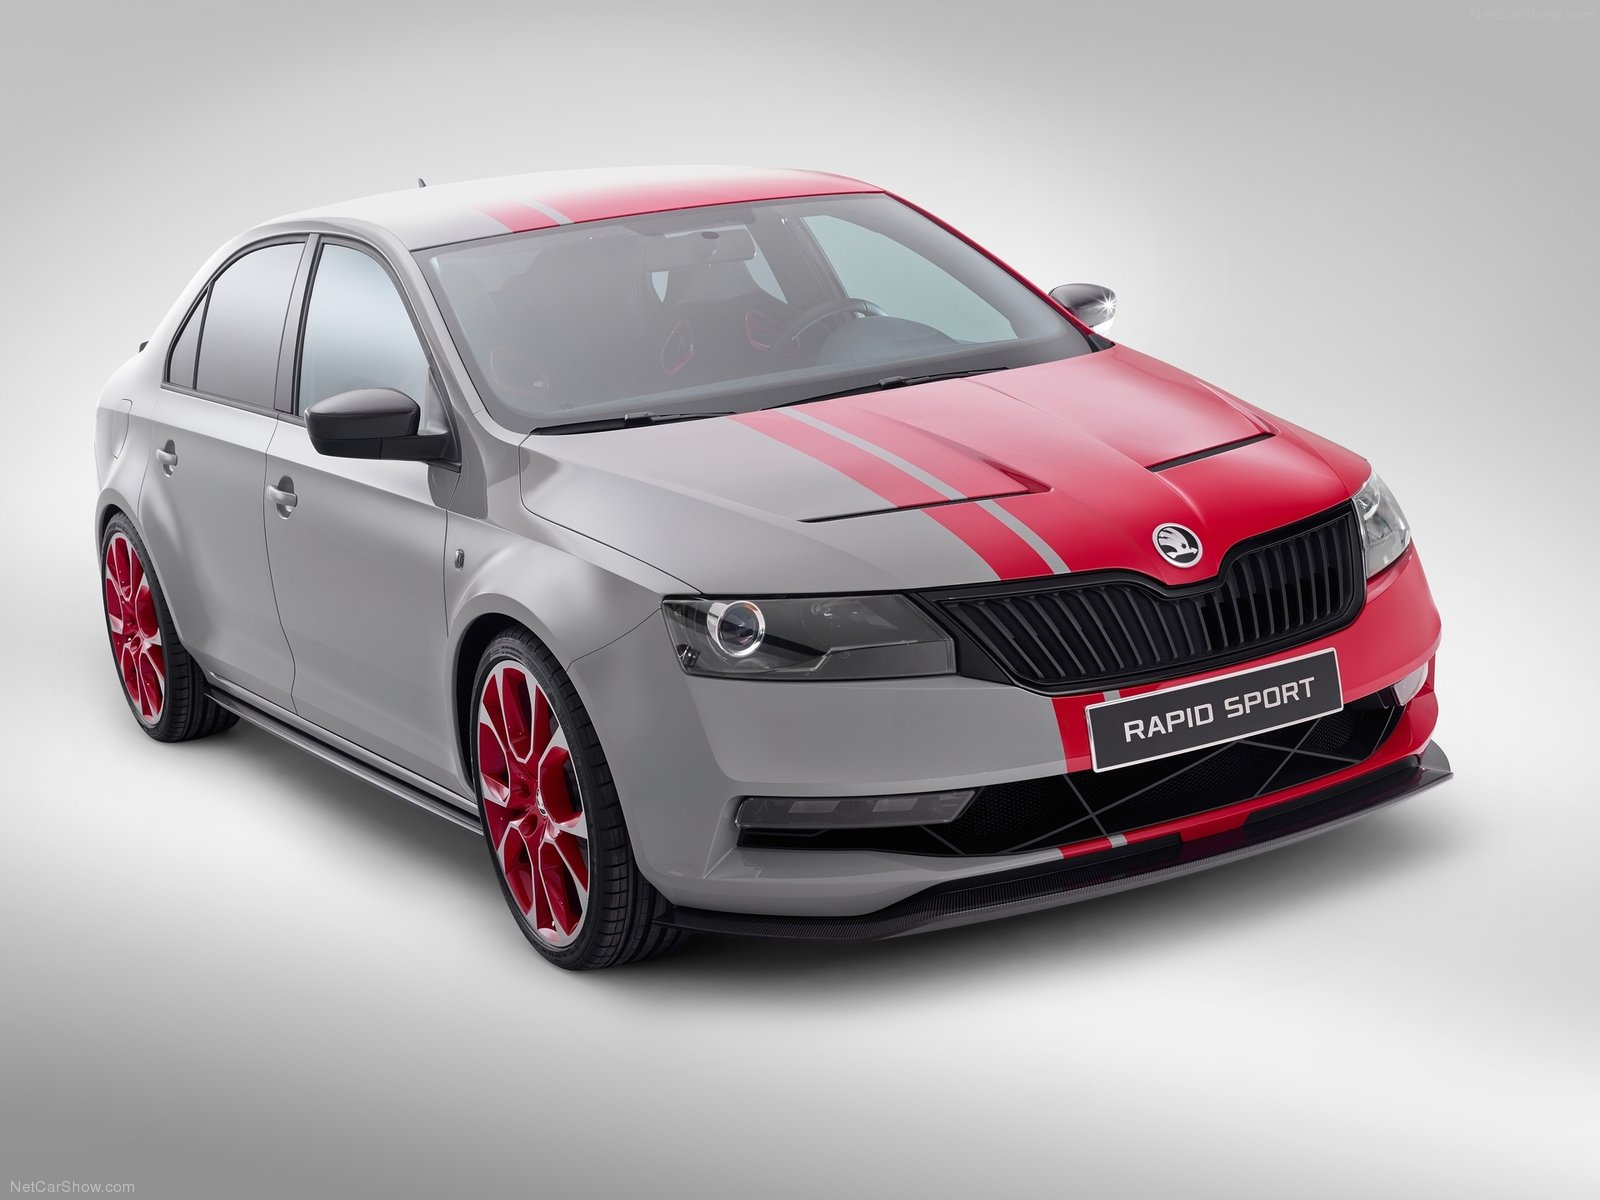 2013 skoda rapid sport concept review spec release date picture and price autocarsblitz. Black Bedroom Furniture Sets. Home Design Ideas